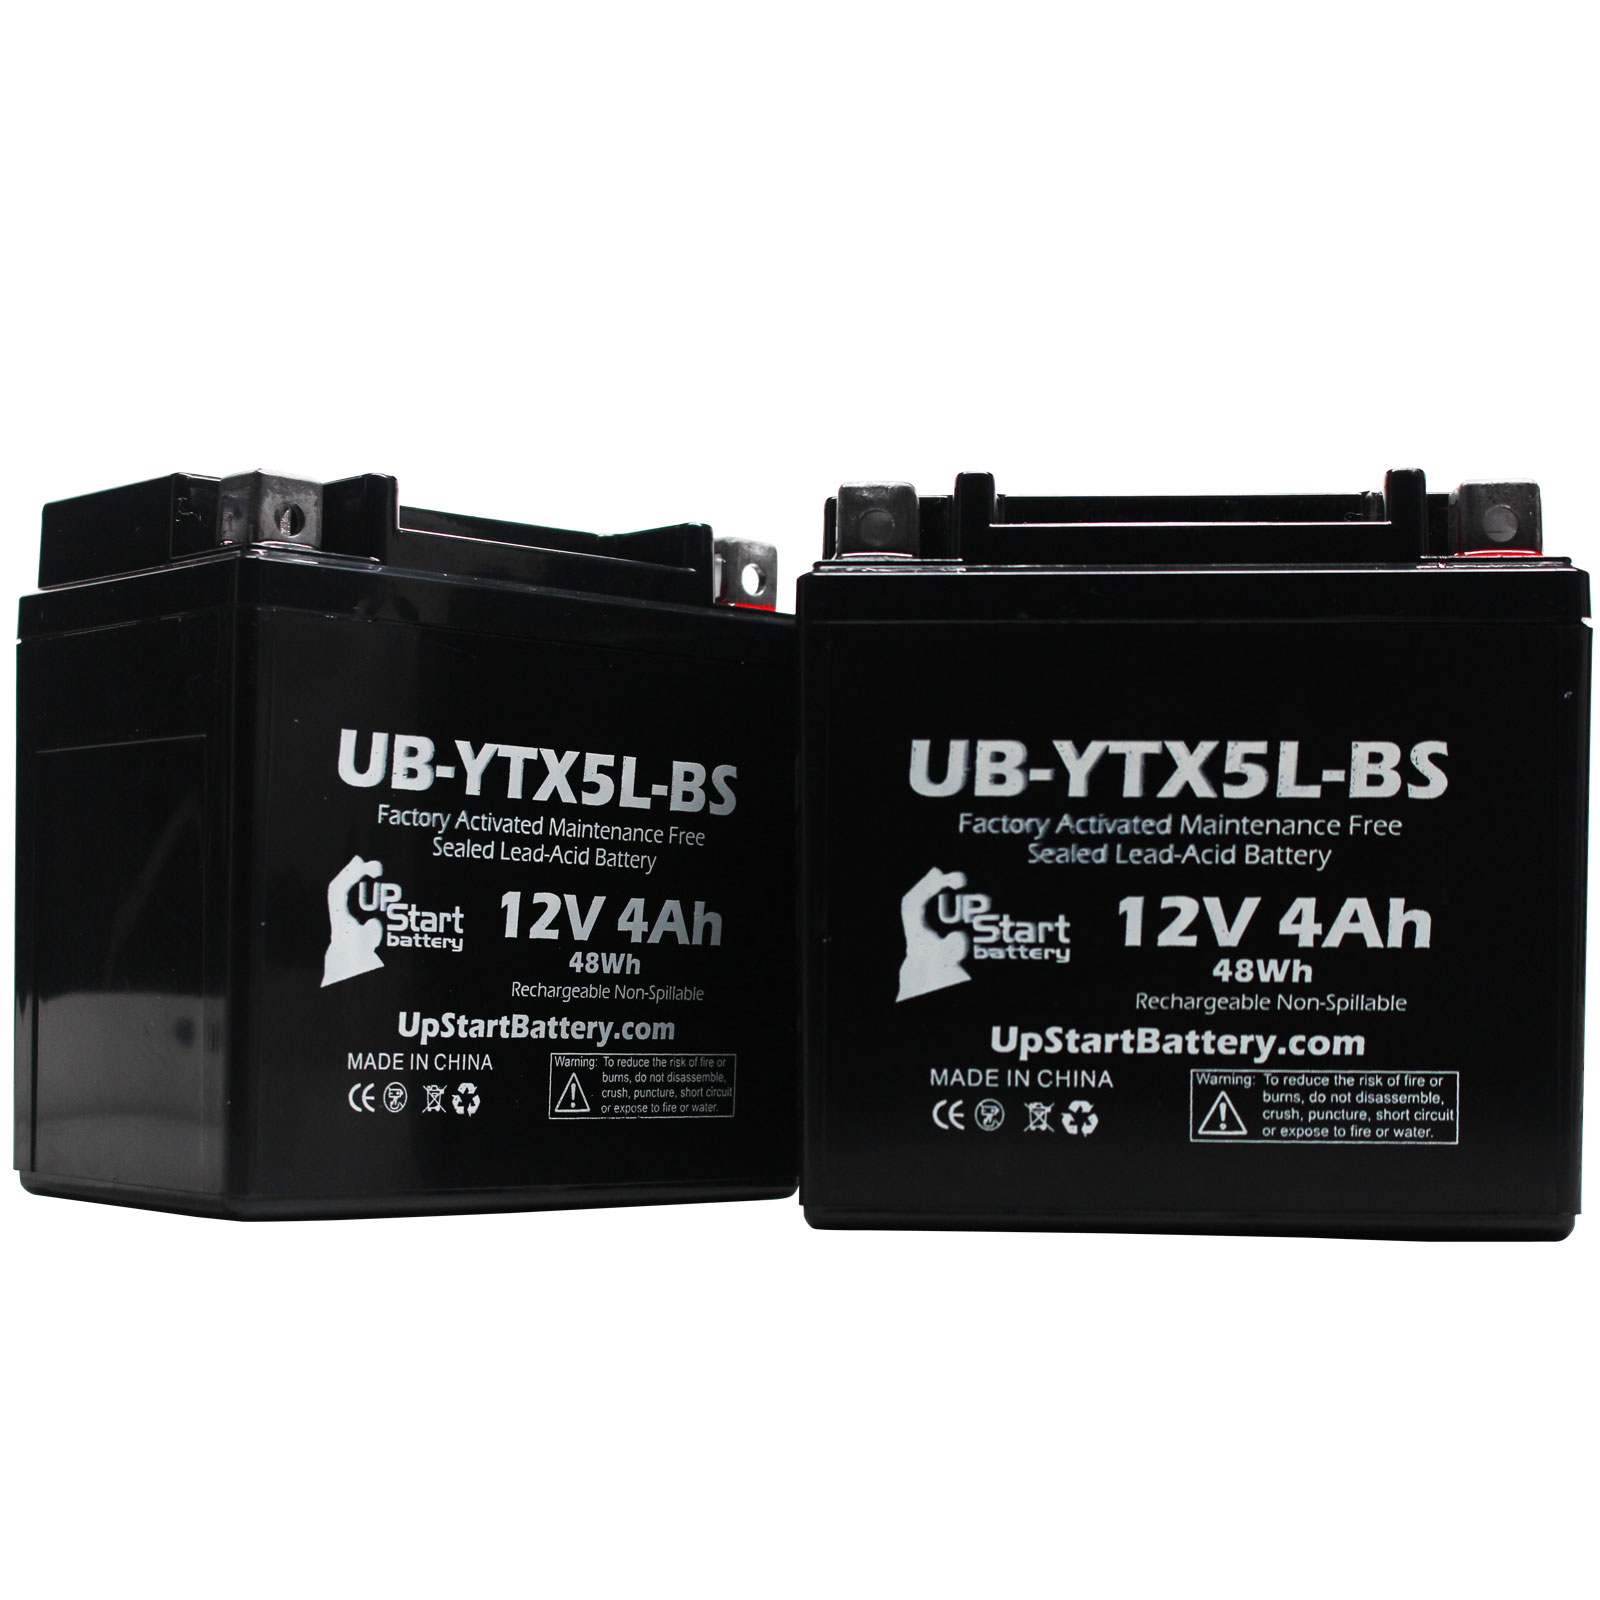 2 Pack - YTX5L-BS Battery Replacement (4Ah, 12v, Sealed) Factory Activated, Maintenance Free Battery Compatible with - 2006 Honda CRF150F, 2006 Honda CRF250X, 2005 Honda CRF250X, 2004 Honda CRF250X